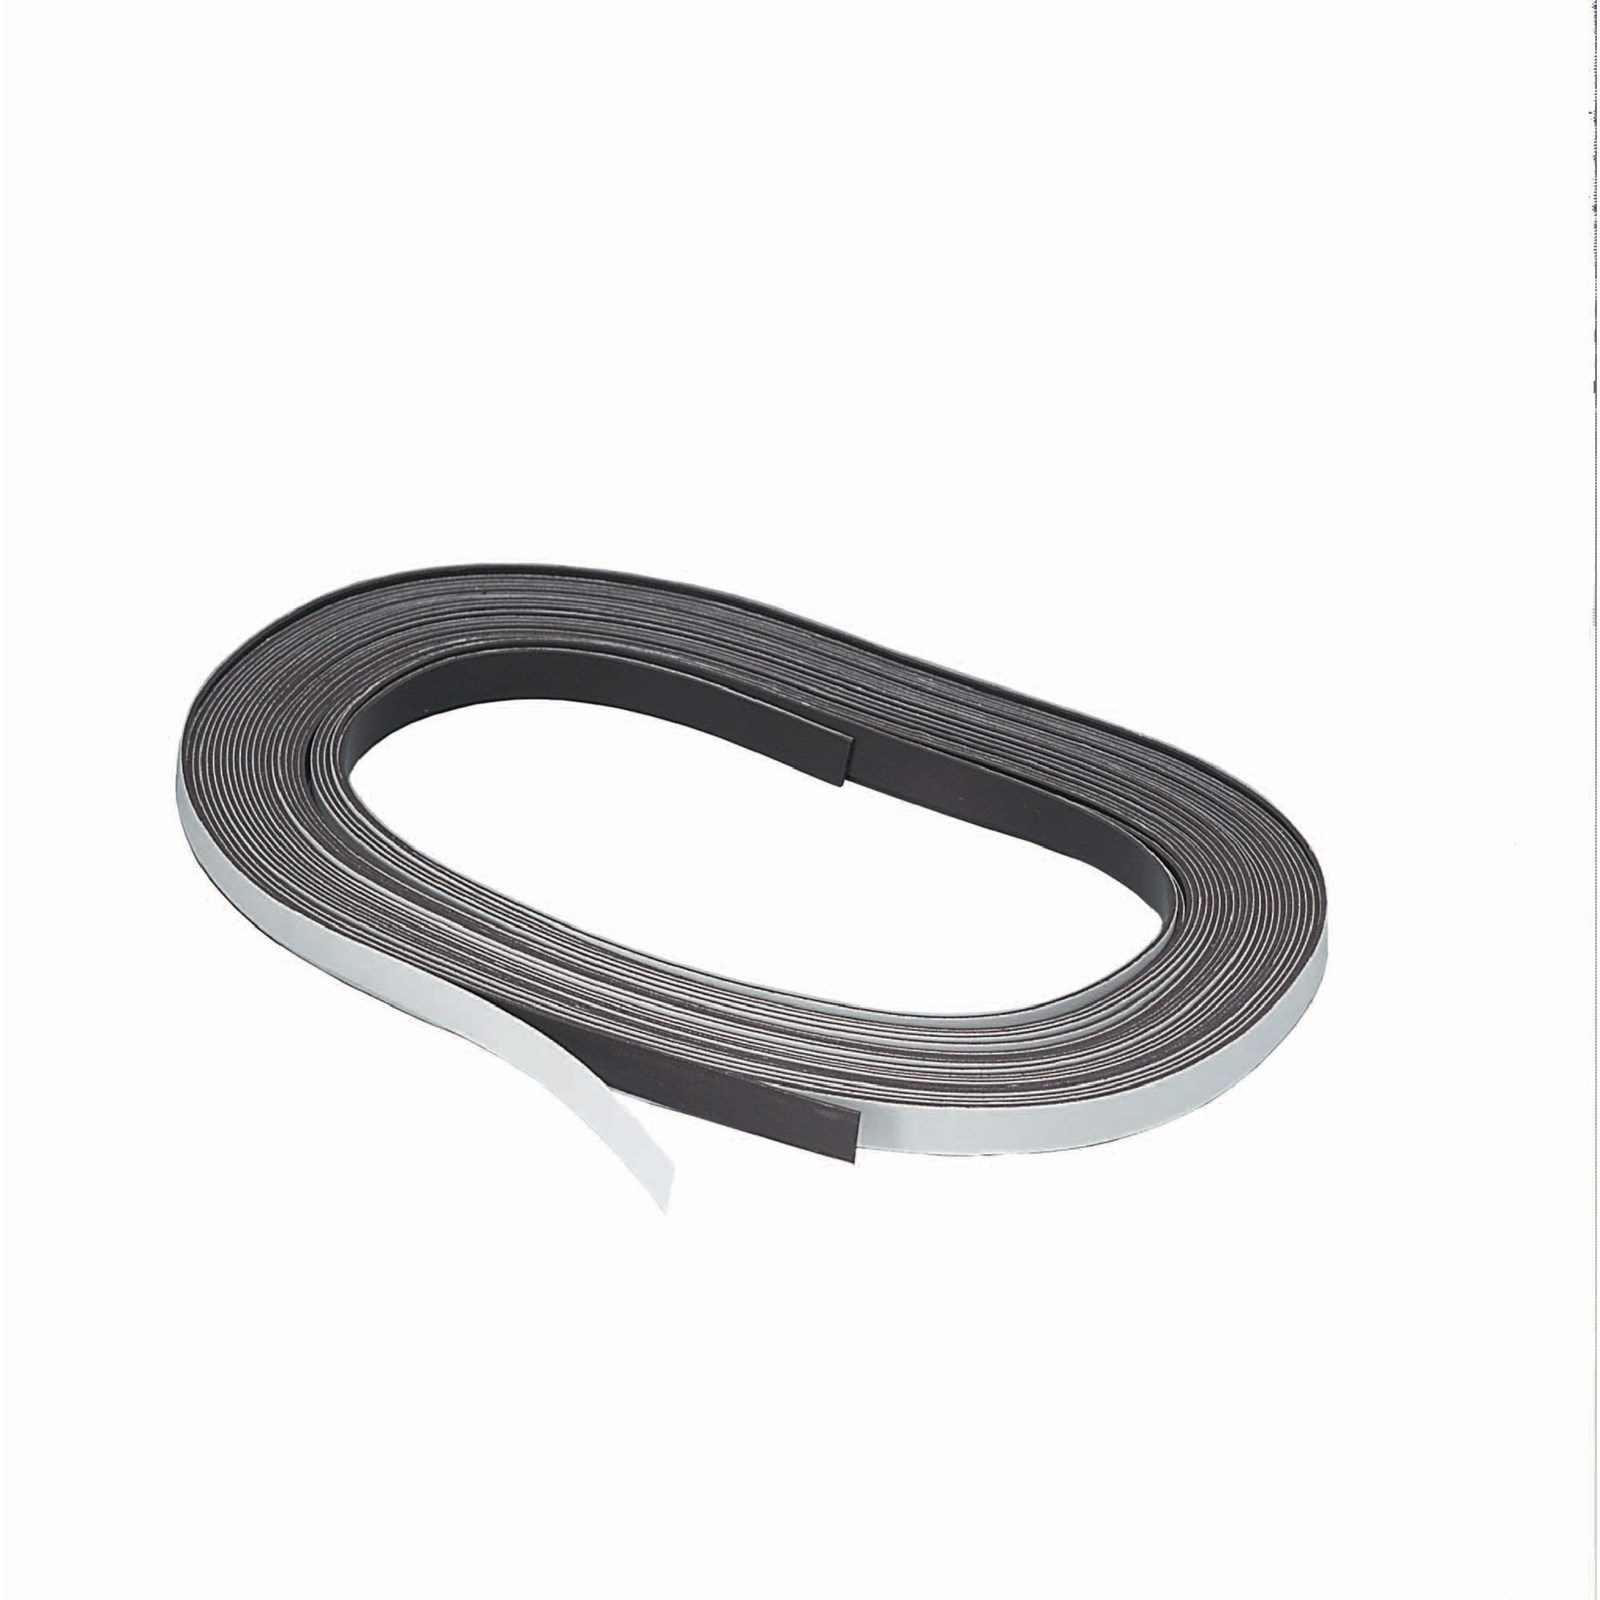 Magnetic Rubber Tape